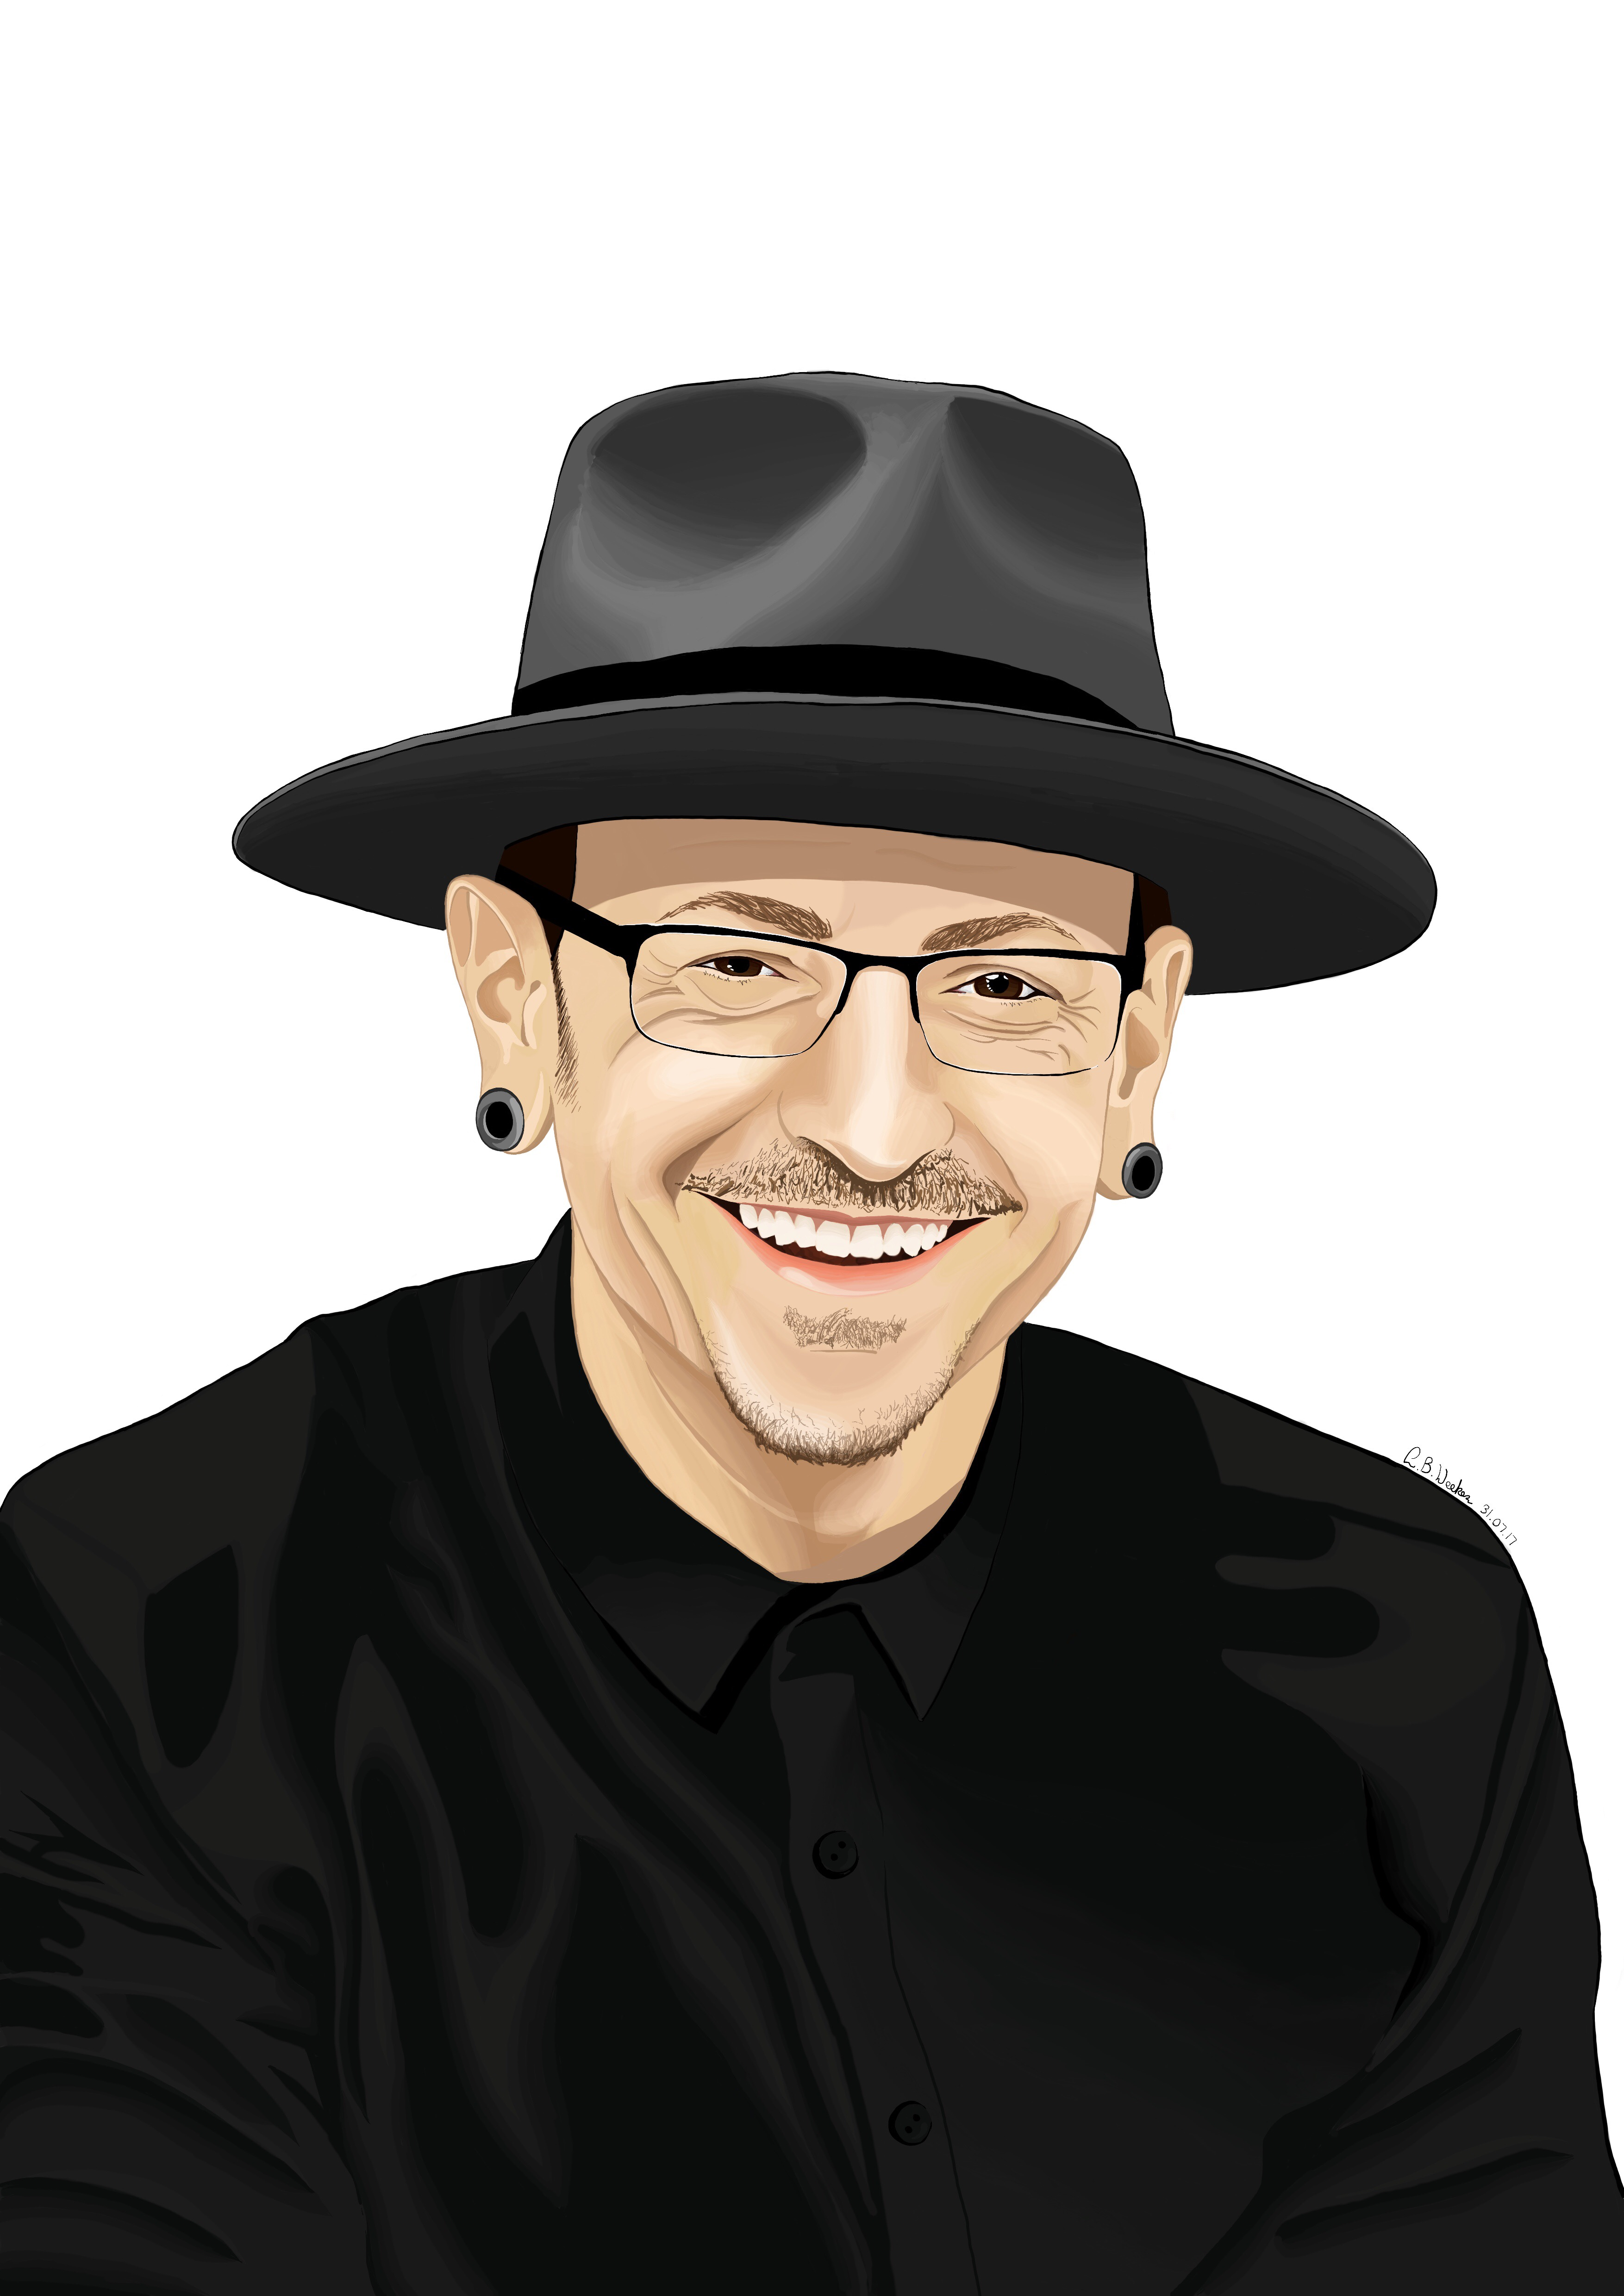 Chester%2026-08-17